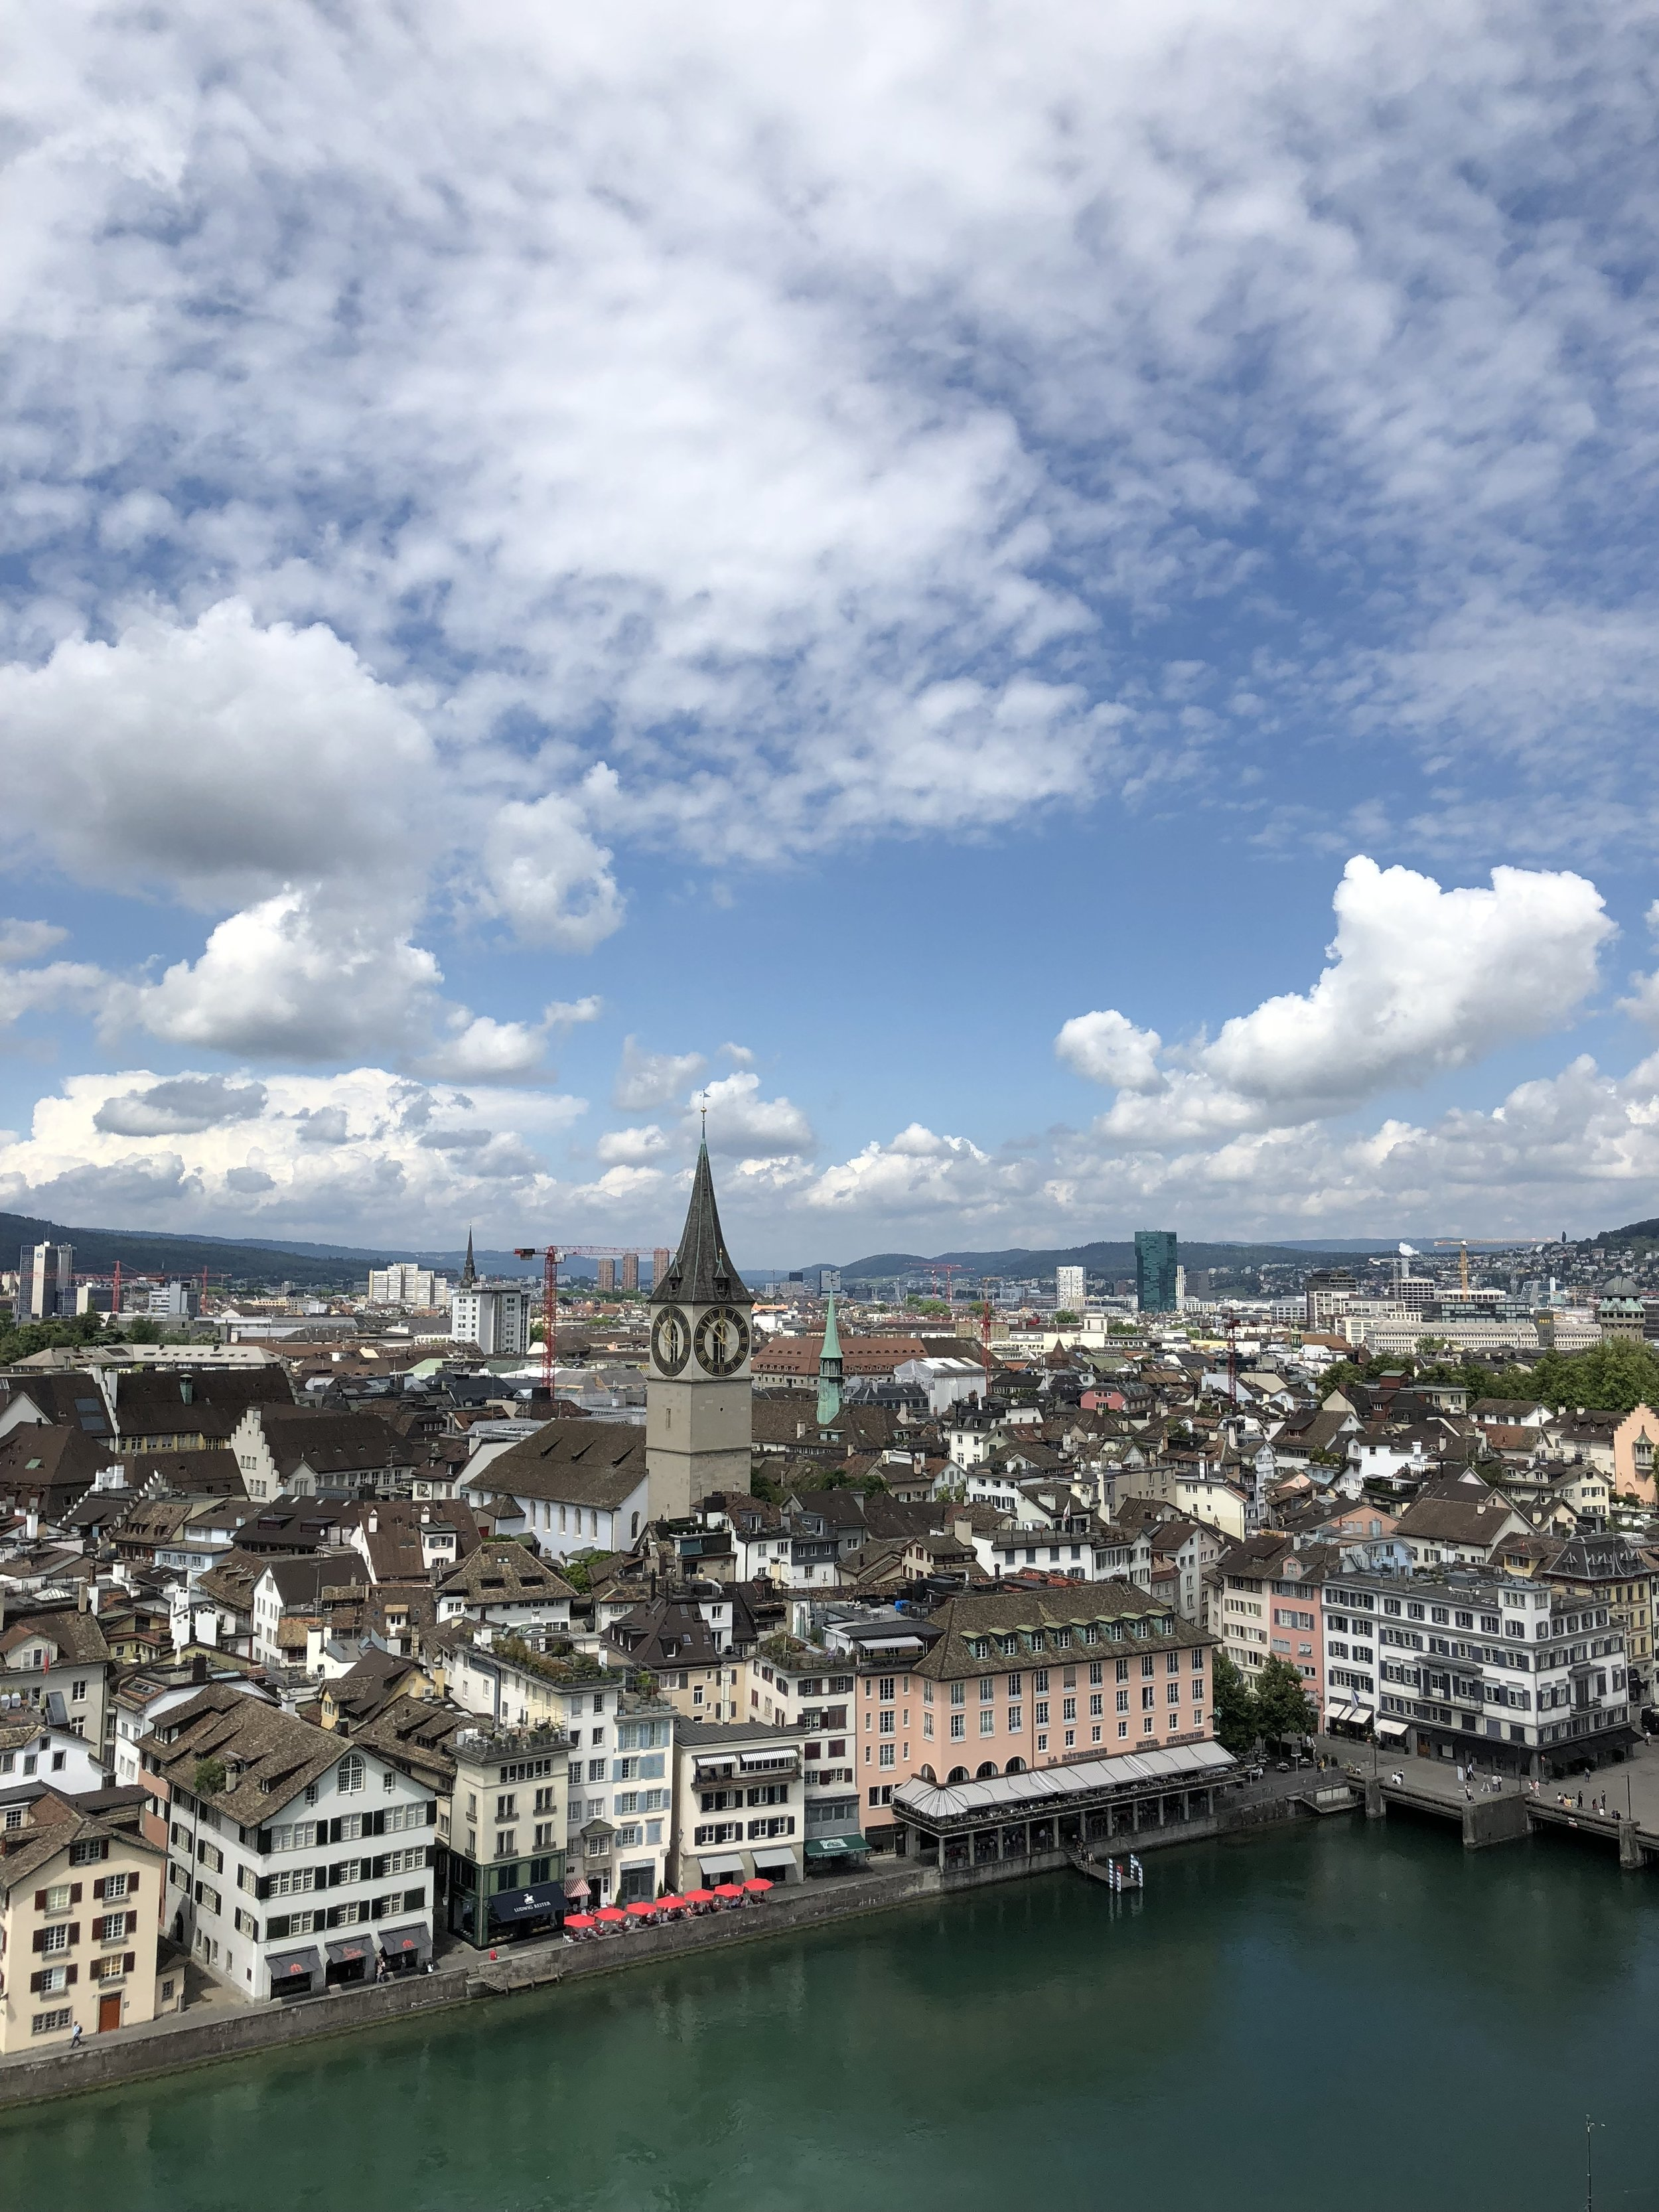 For just a few Swiss francs, we got some amazing views of Zurich from the Tower of the  Grossmunster Cathedral . We went on a beautiful clear day and it was worth every franc!